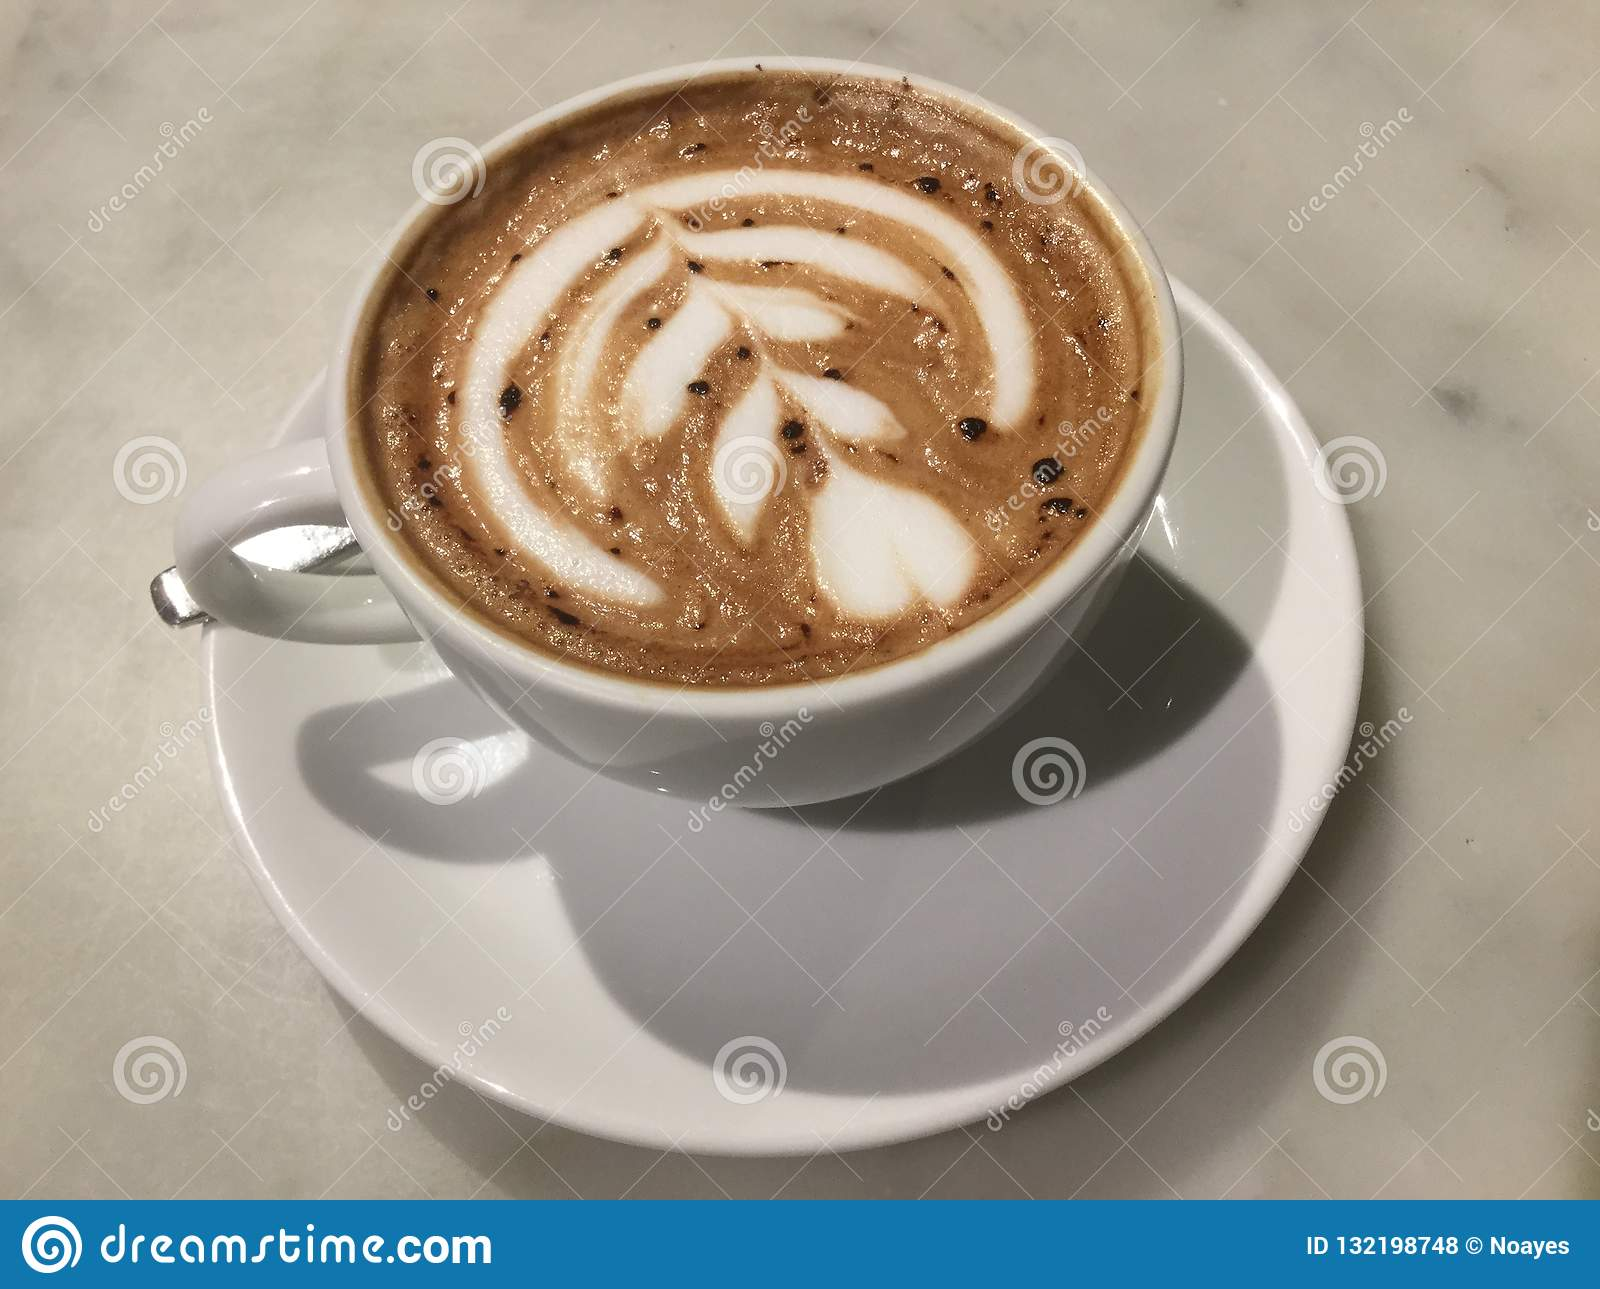 Caffe Latte Mocaccono Mocha Chocolate Cafe Latte Art Close Up Stock Photo